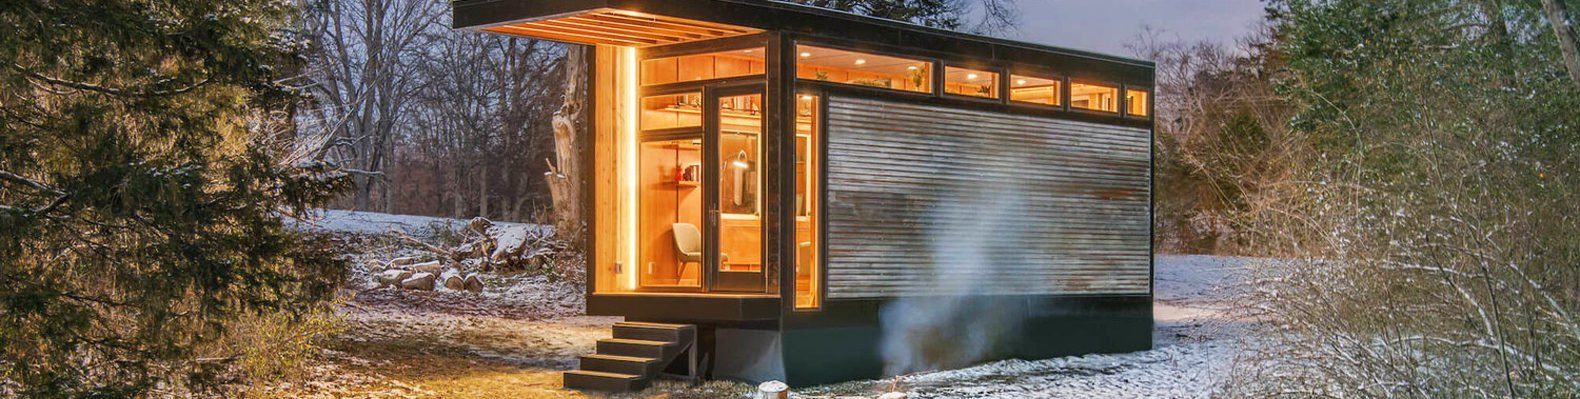 The Cornelia Tiny Home is surrounded by forest. Just outside of the home, a fire burns in a pit.